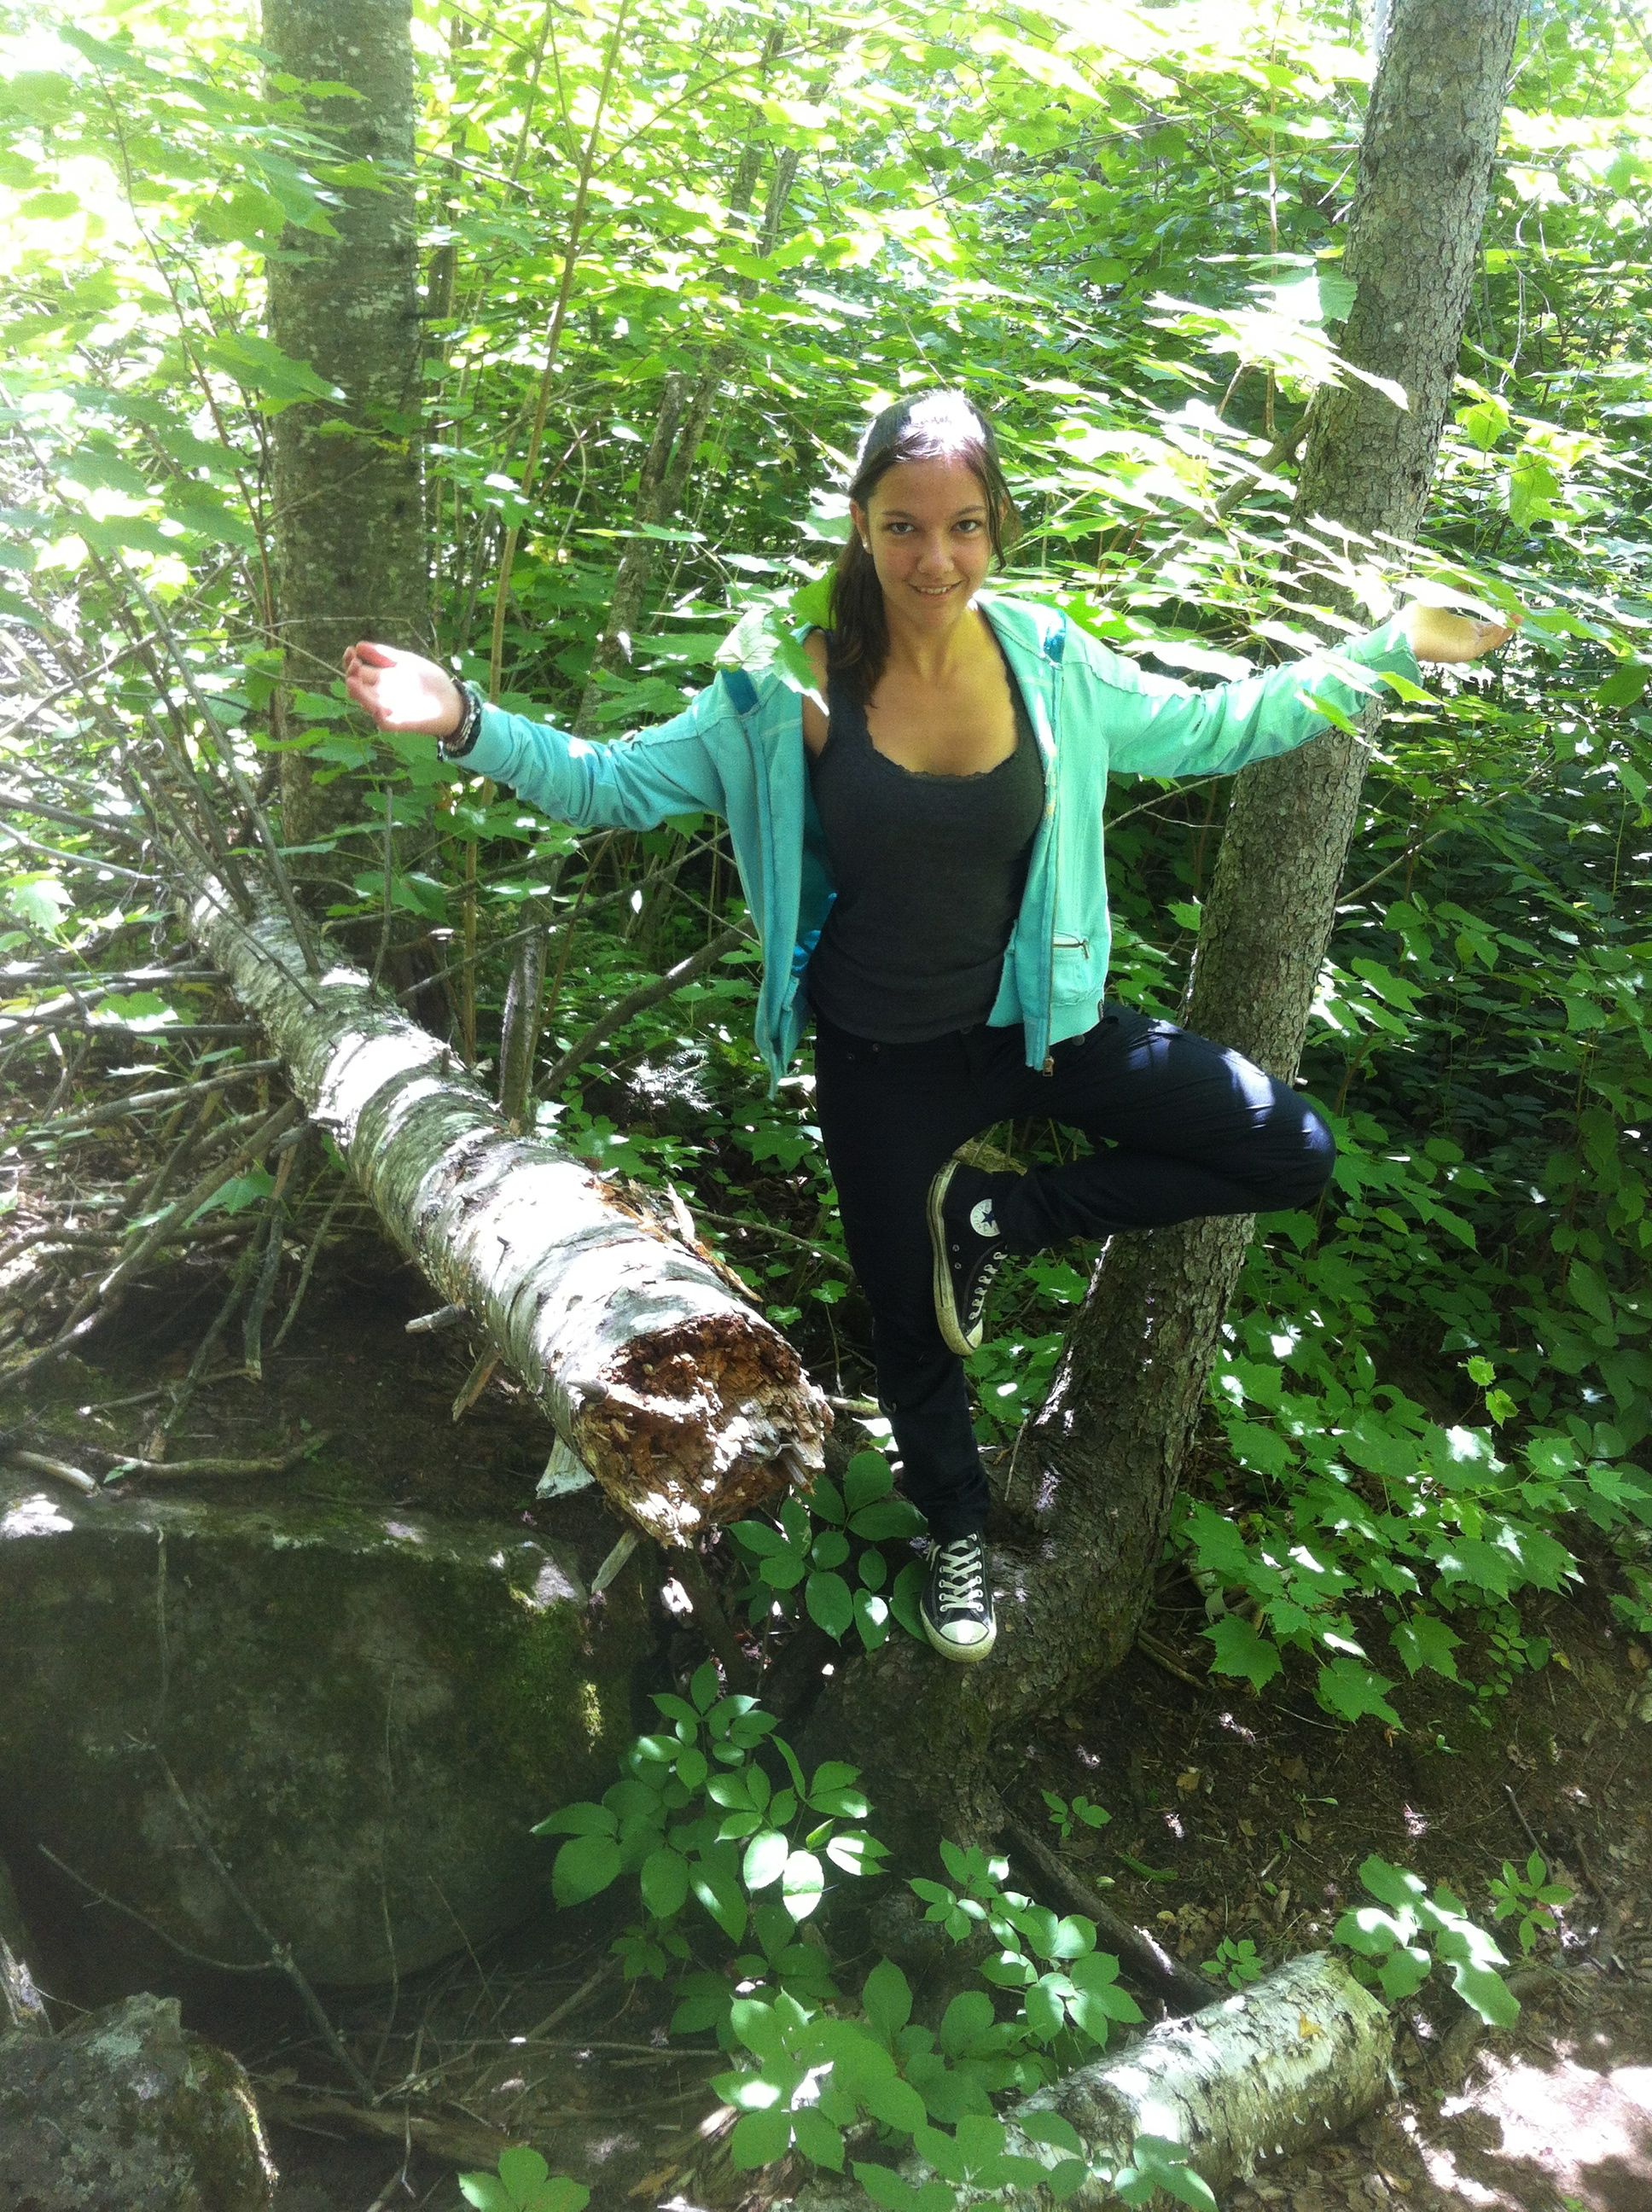 2013 Palisades of the Pijitawabik-Kia tree pose on a tree